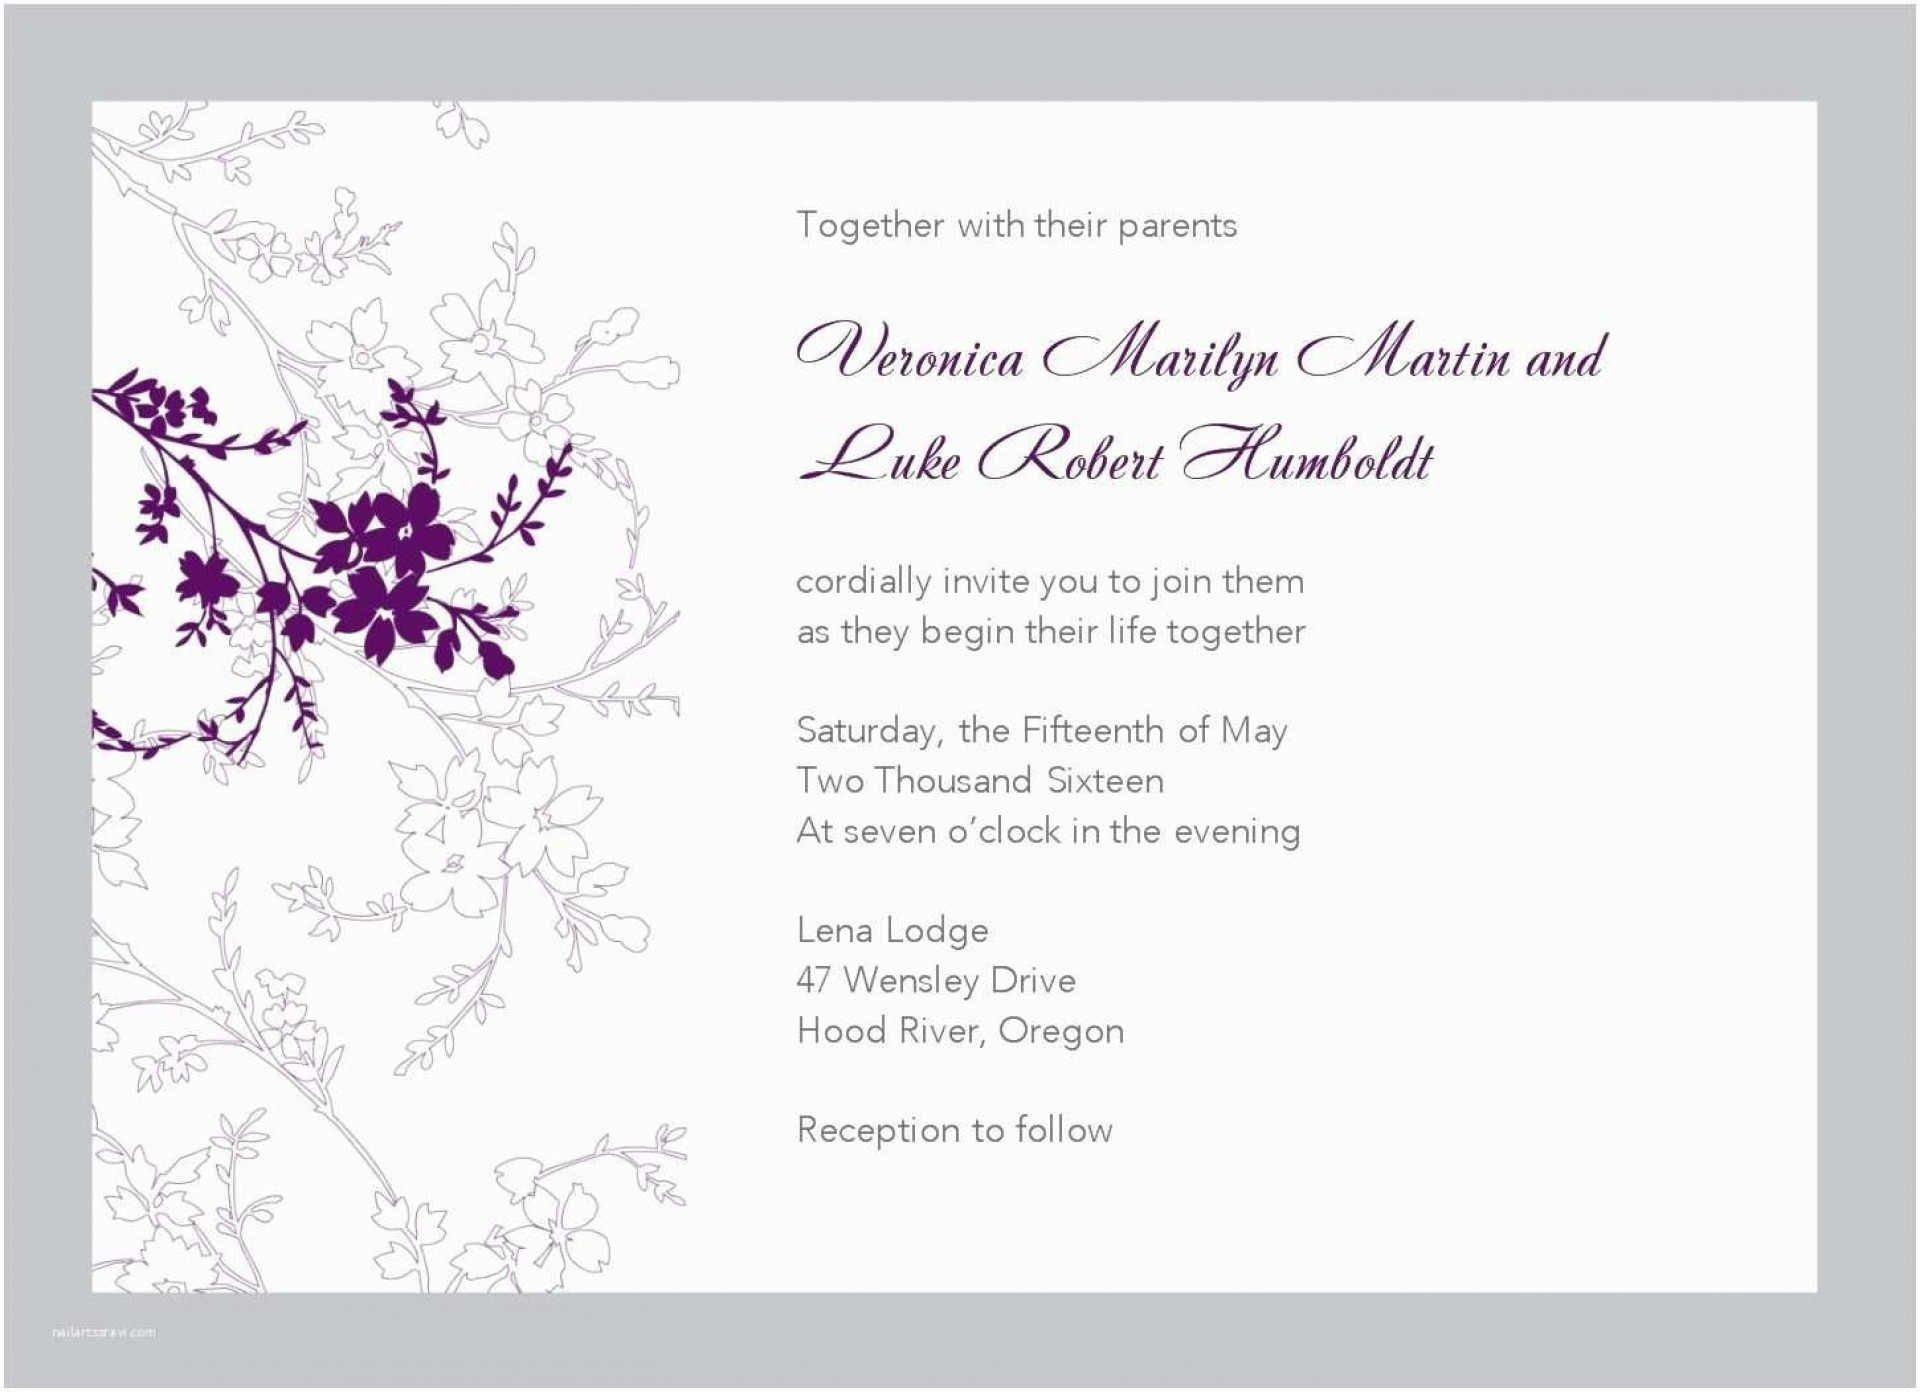 007 Incredible Free Wedding Template For Word Concept  Invitation In Marathi Menu1920